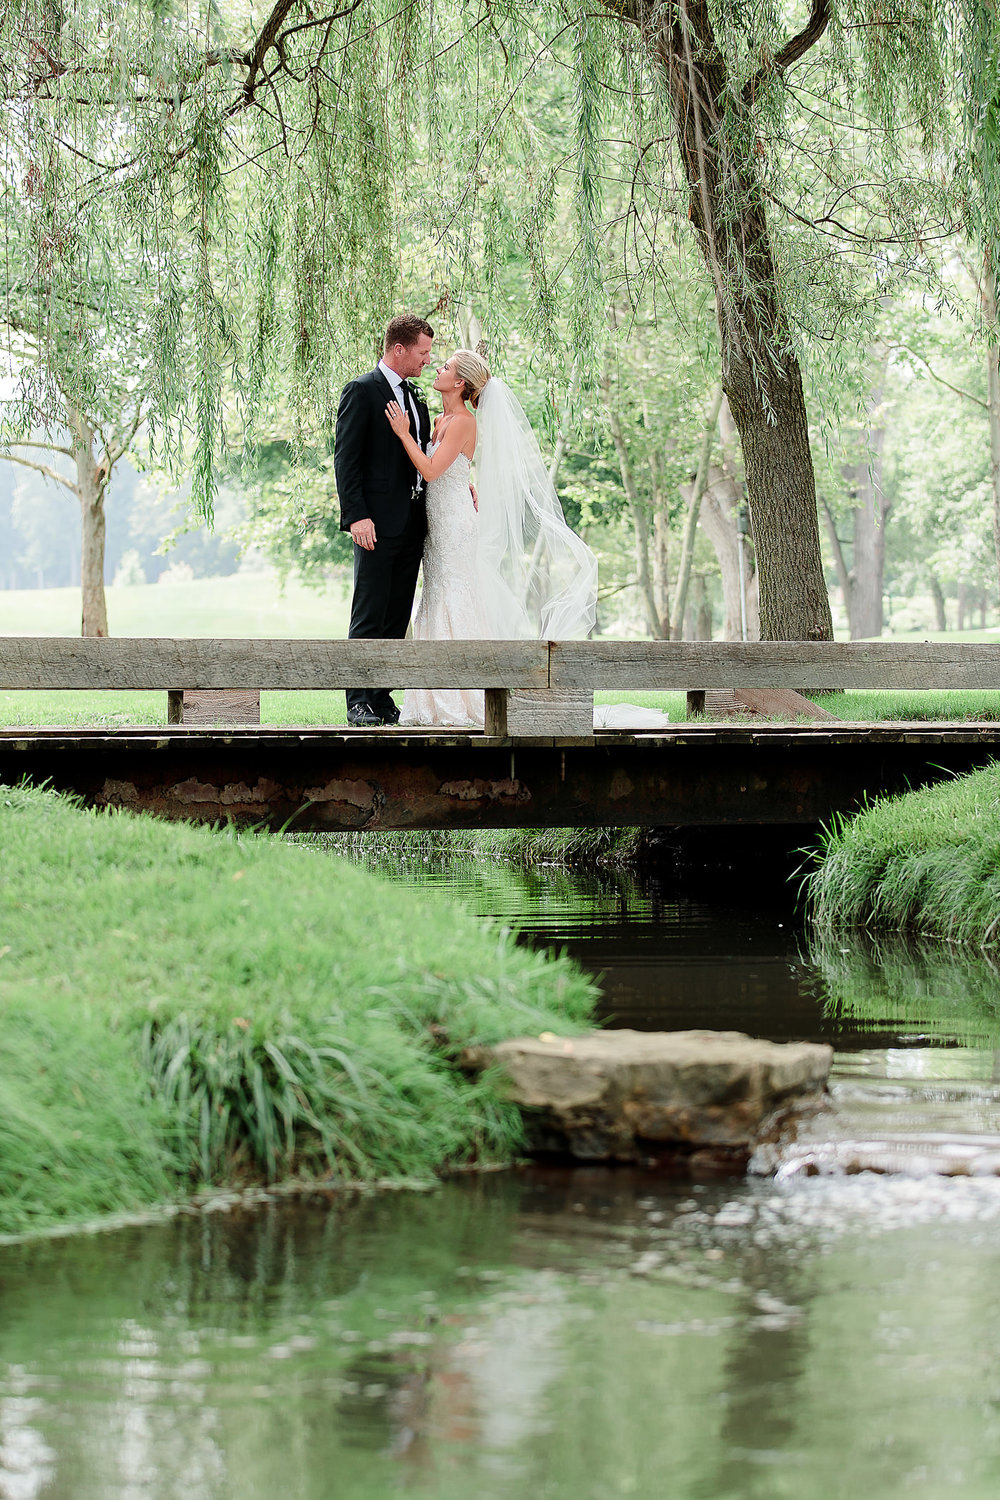 Wedding Photographers Columbus Ohio - Robb McCormick Photography (21 of 29).jpg